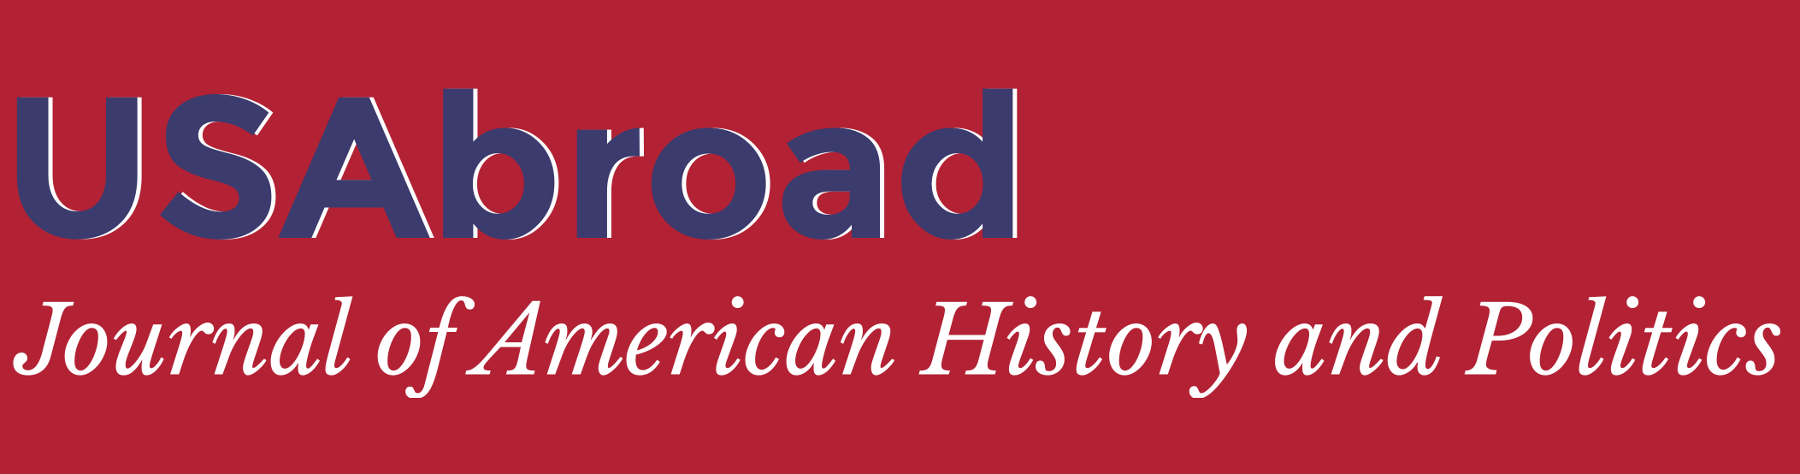 USAbroad – Journal of American History and Politics